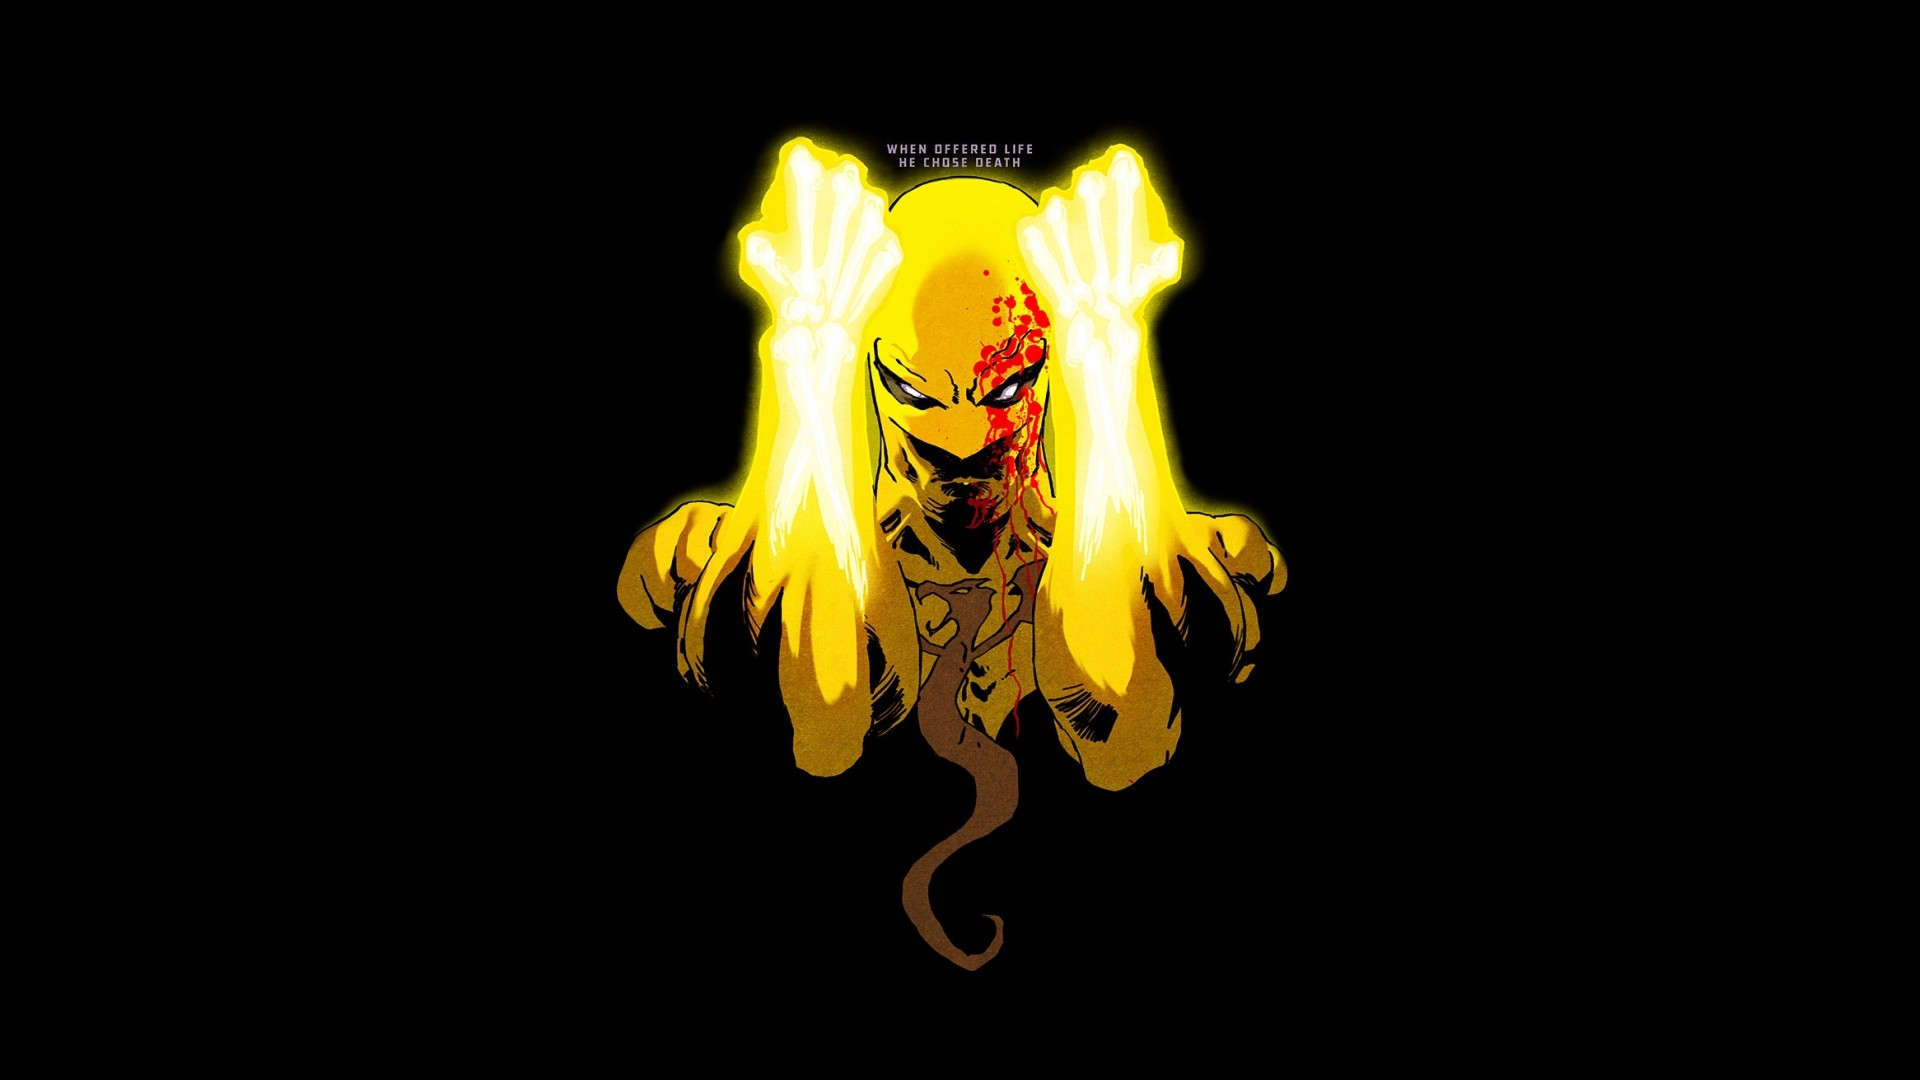 Iron fist wallpaper 74 images - Wallpaper abyss categories ...